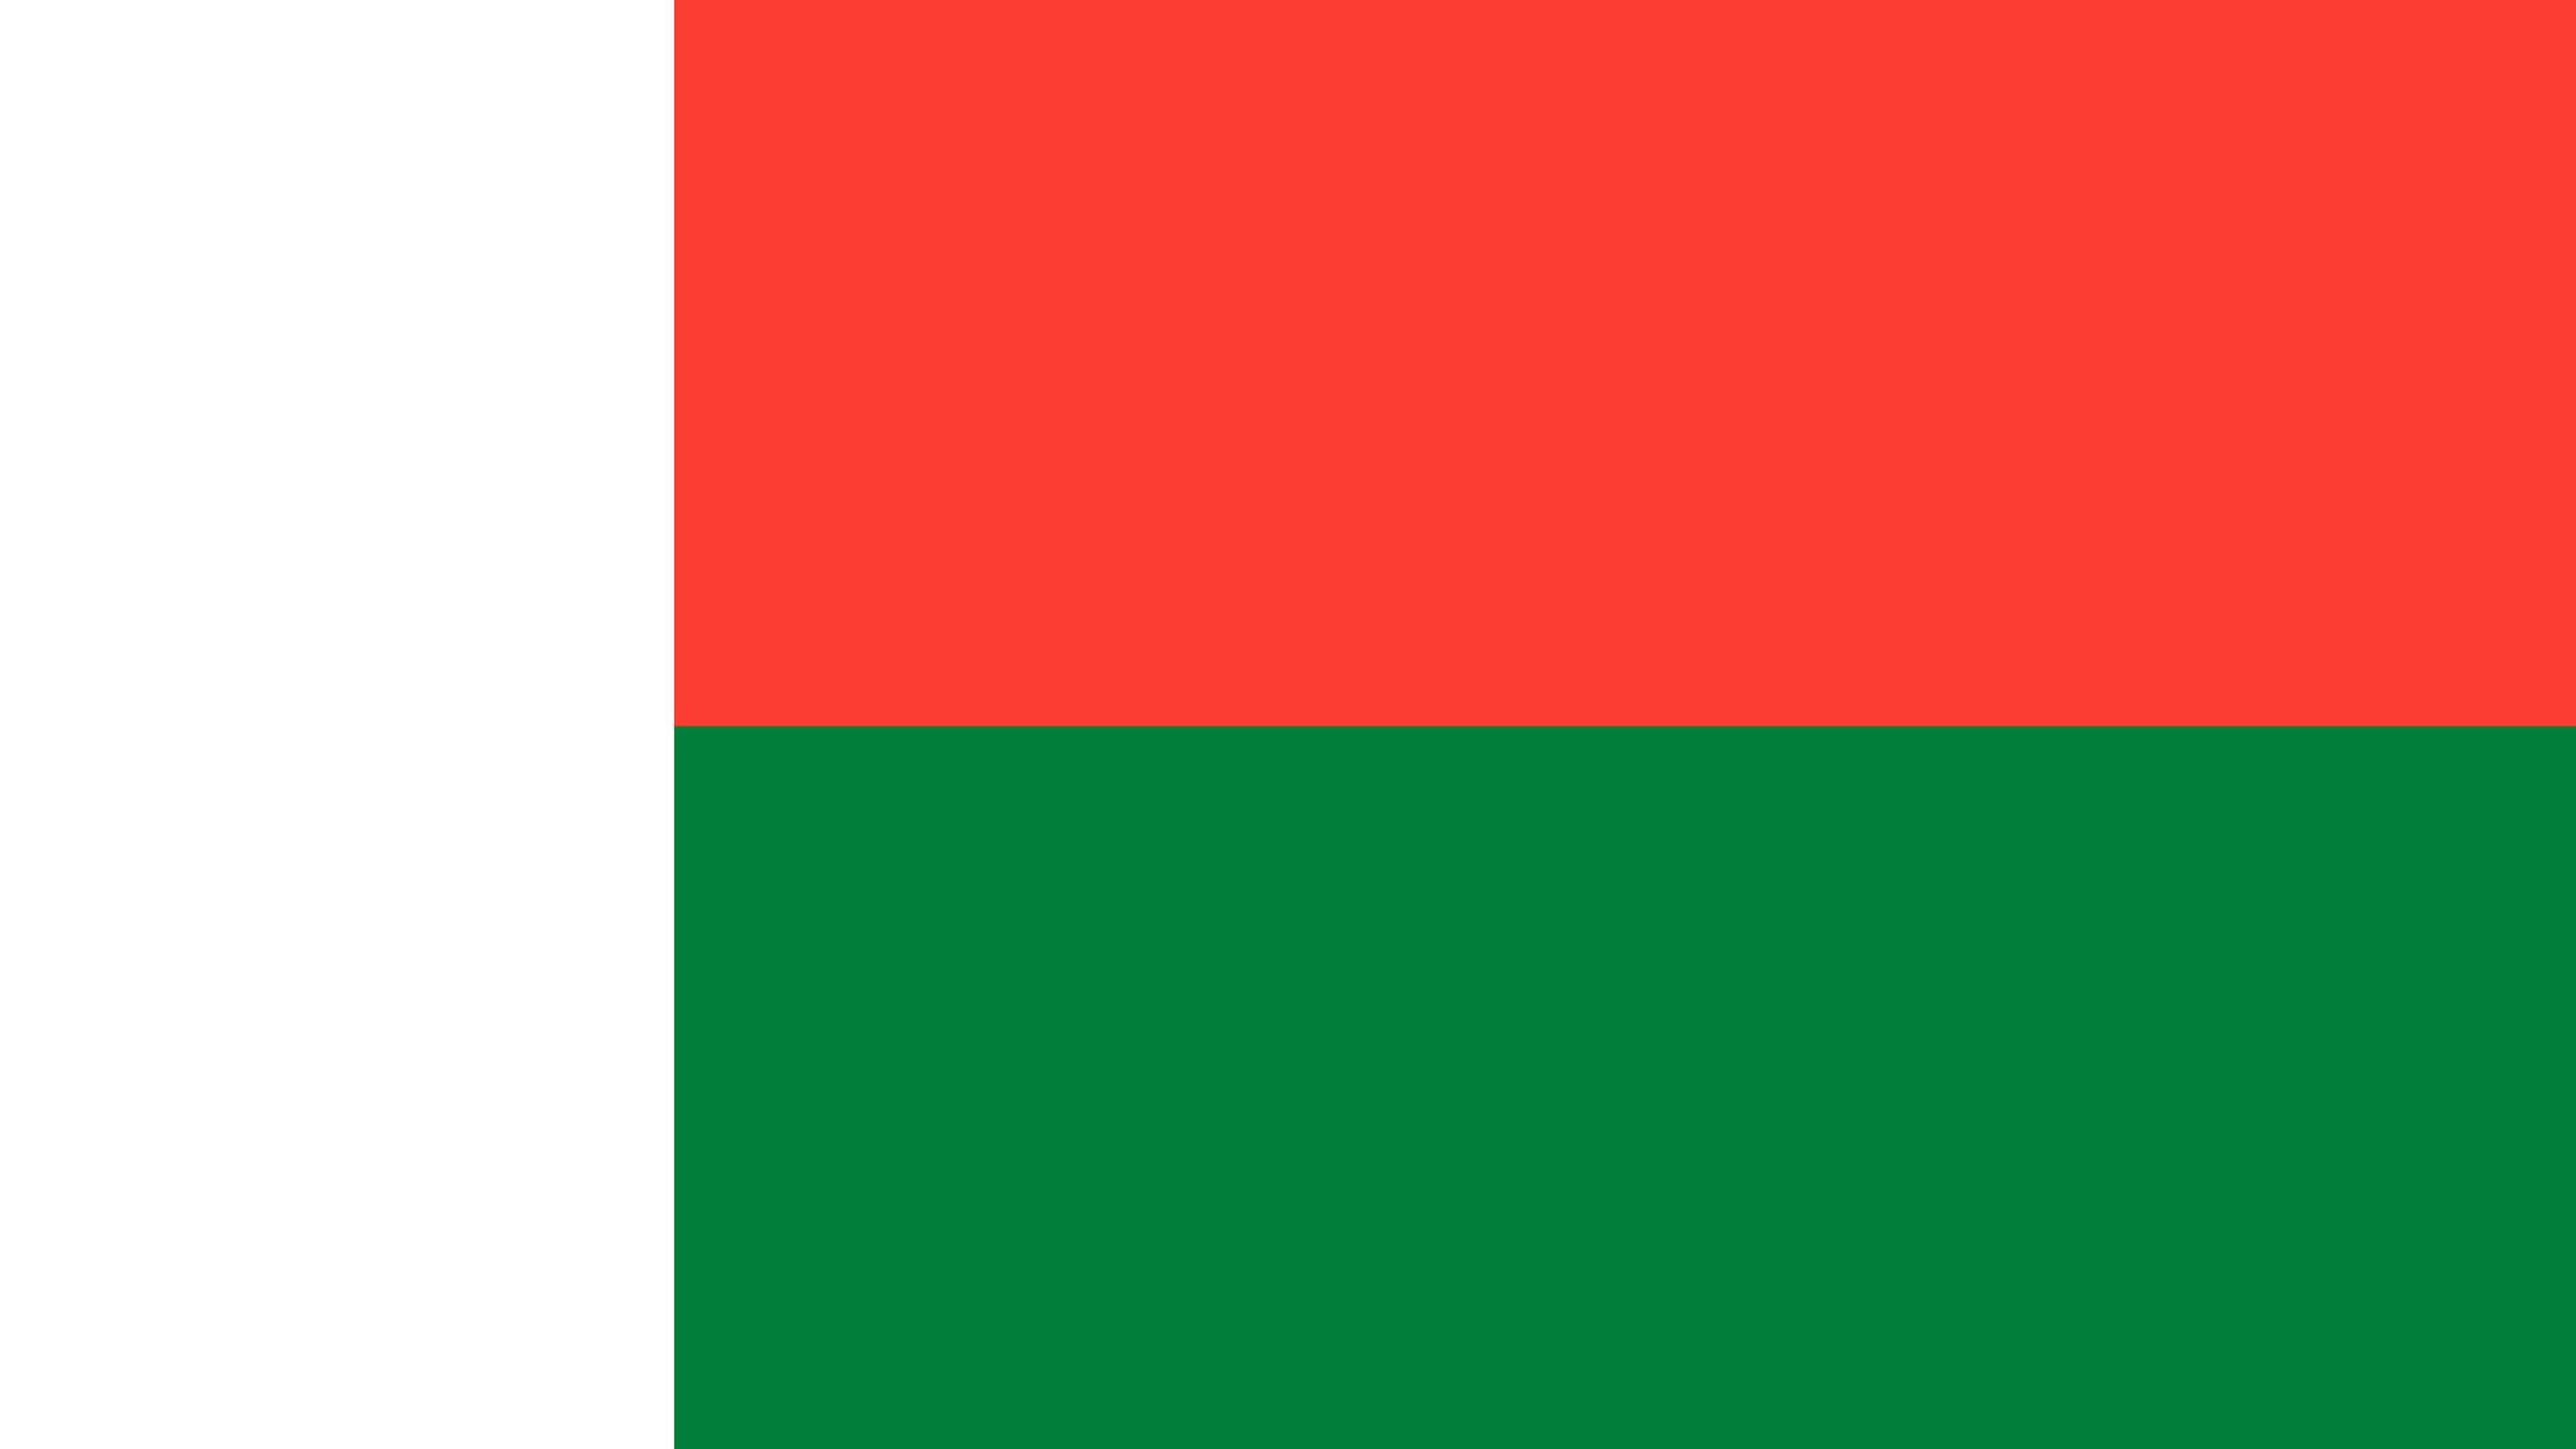 madagascar flag uhd 4k wallpaper